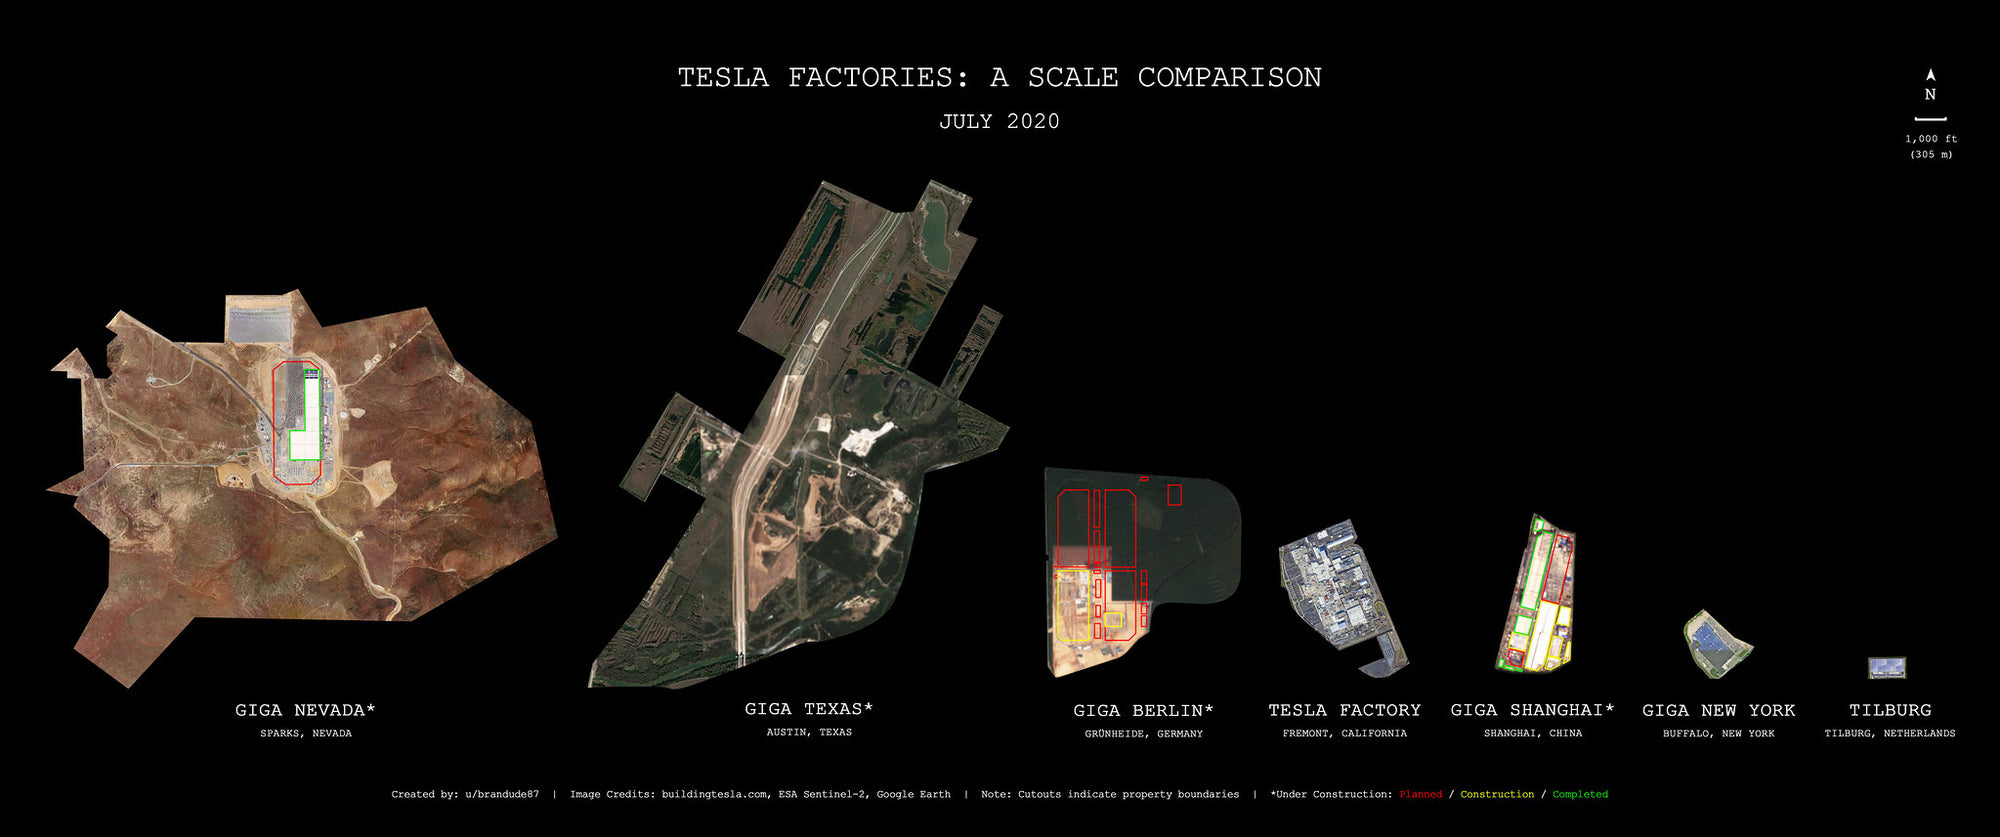 Tesla Giga Shanghai, Berlin, Texas, Nevada and More, An All-Factory Scale Comparison